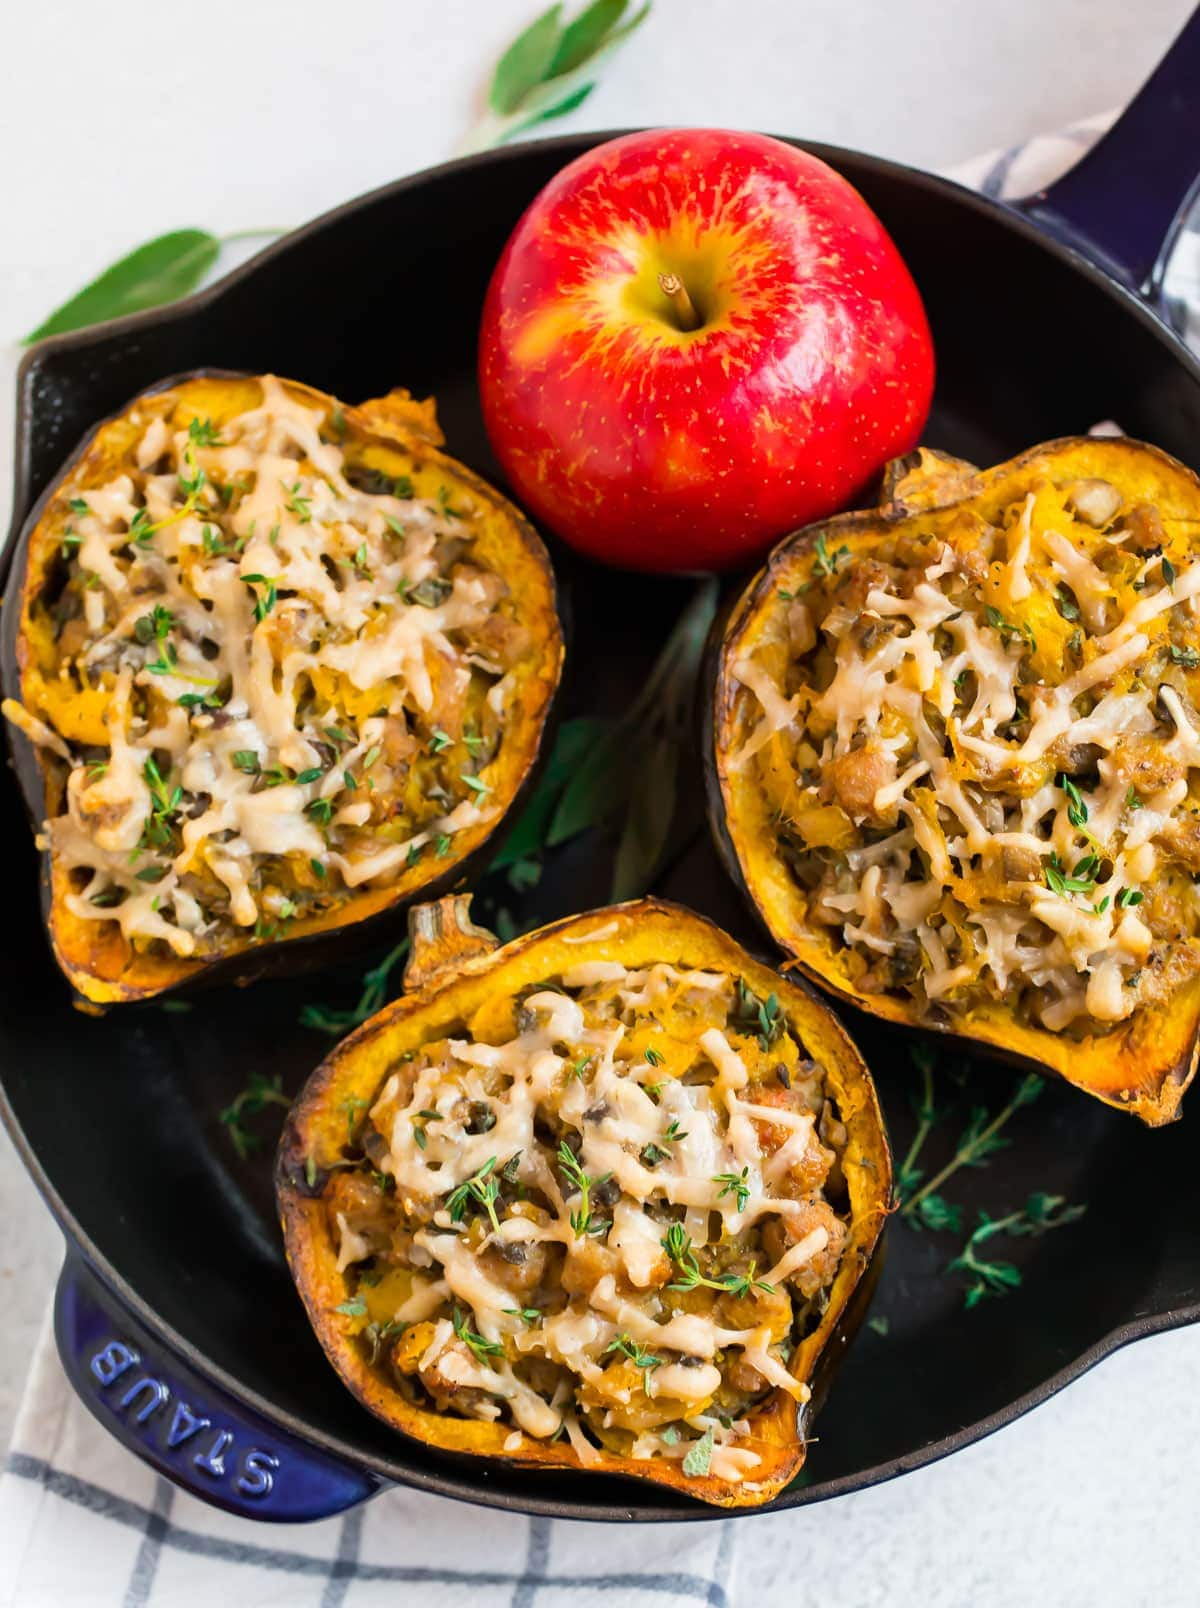 Sausage Stuffed Acorn Squash With Apples And Mushrooms